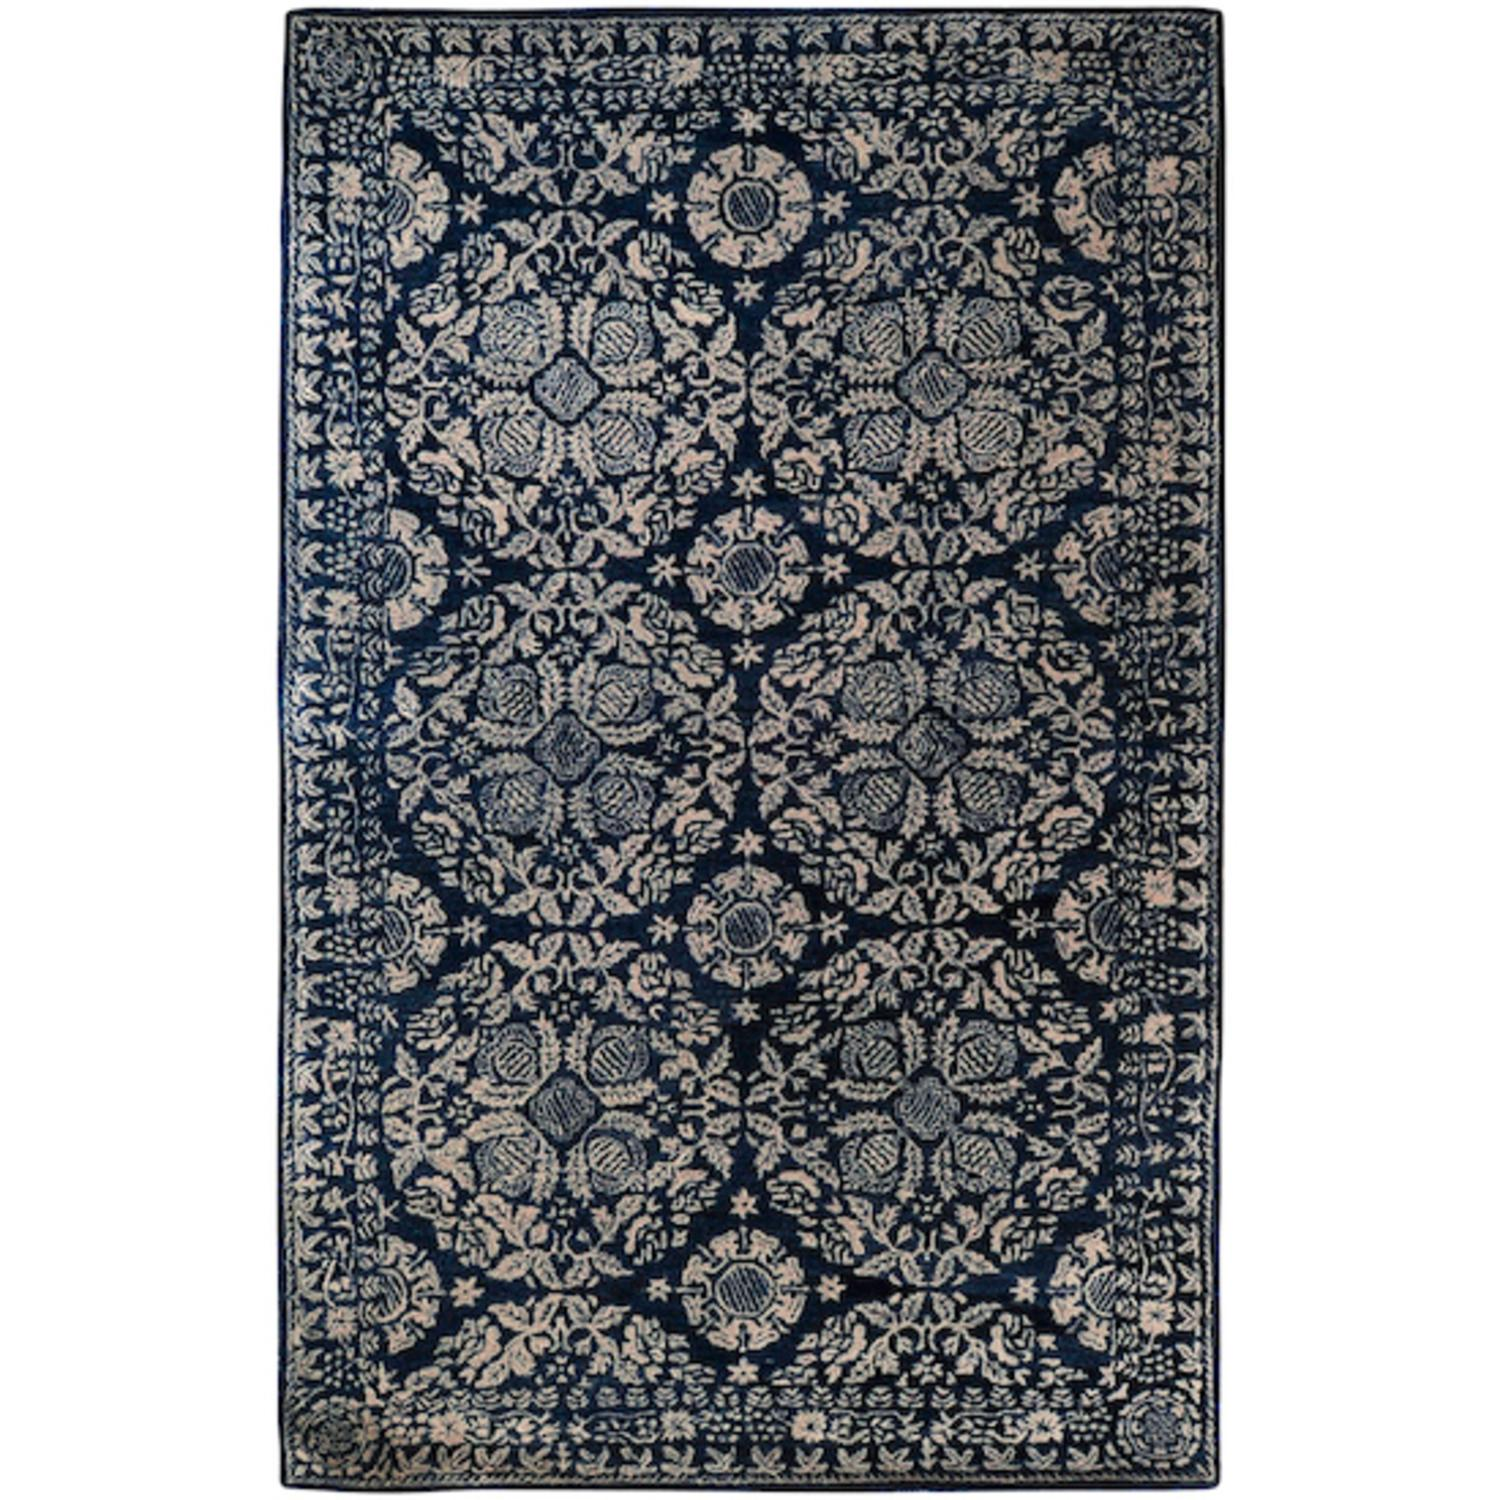 2' x 3' Royal Circle Dark Slate Blue and Parchment Wool Area Throw Rug